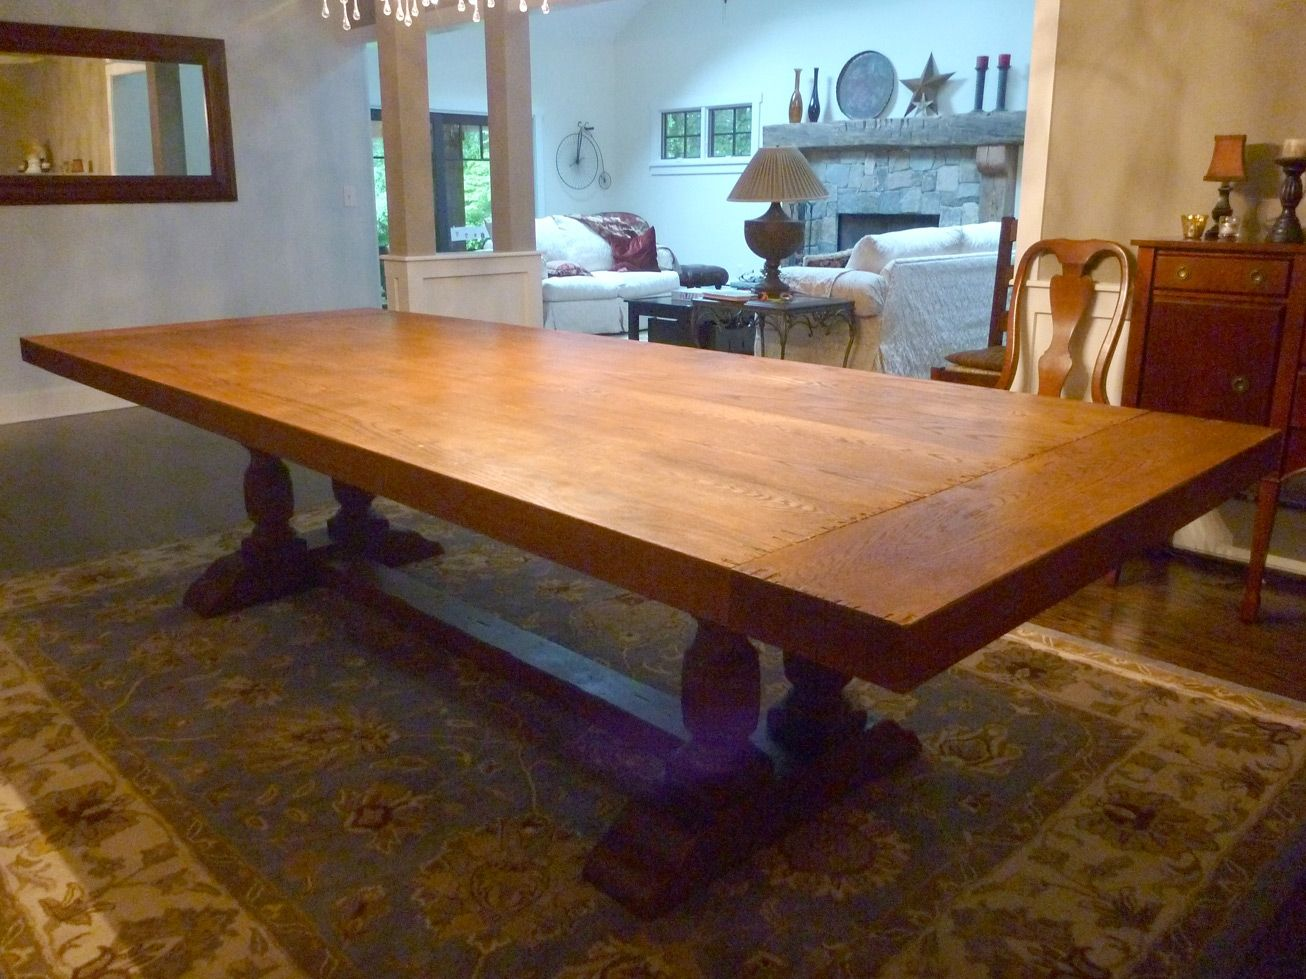 Hand Crafted Dining Room Table Top By AJC Woodworking CustomMadecom - Custom dining room table and chairs